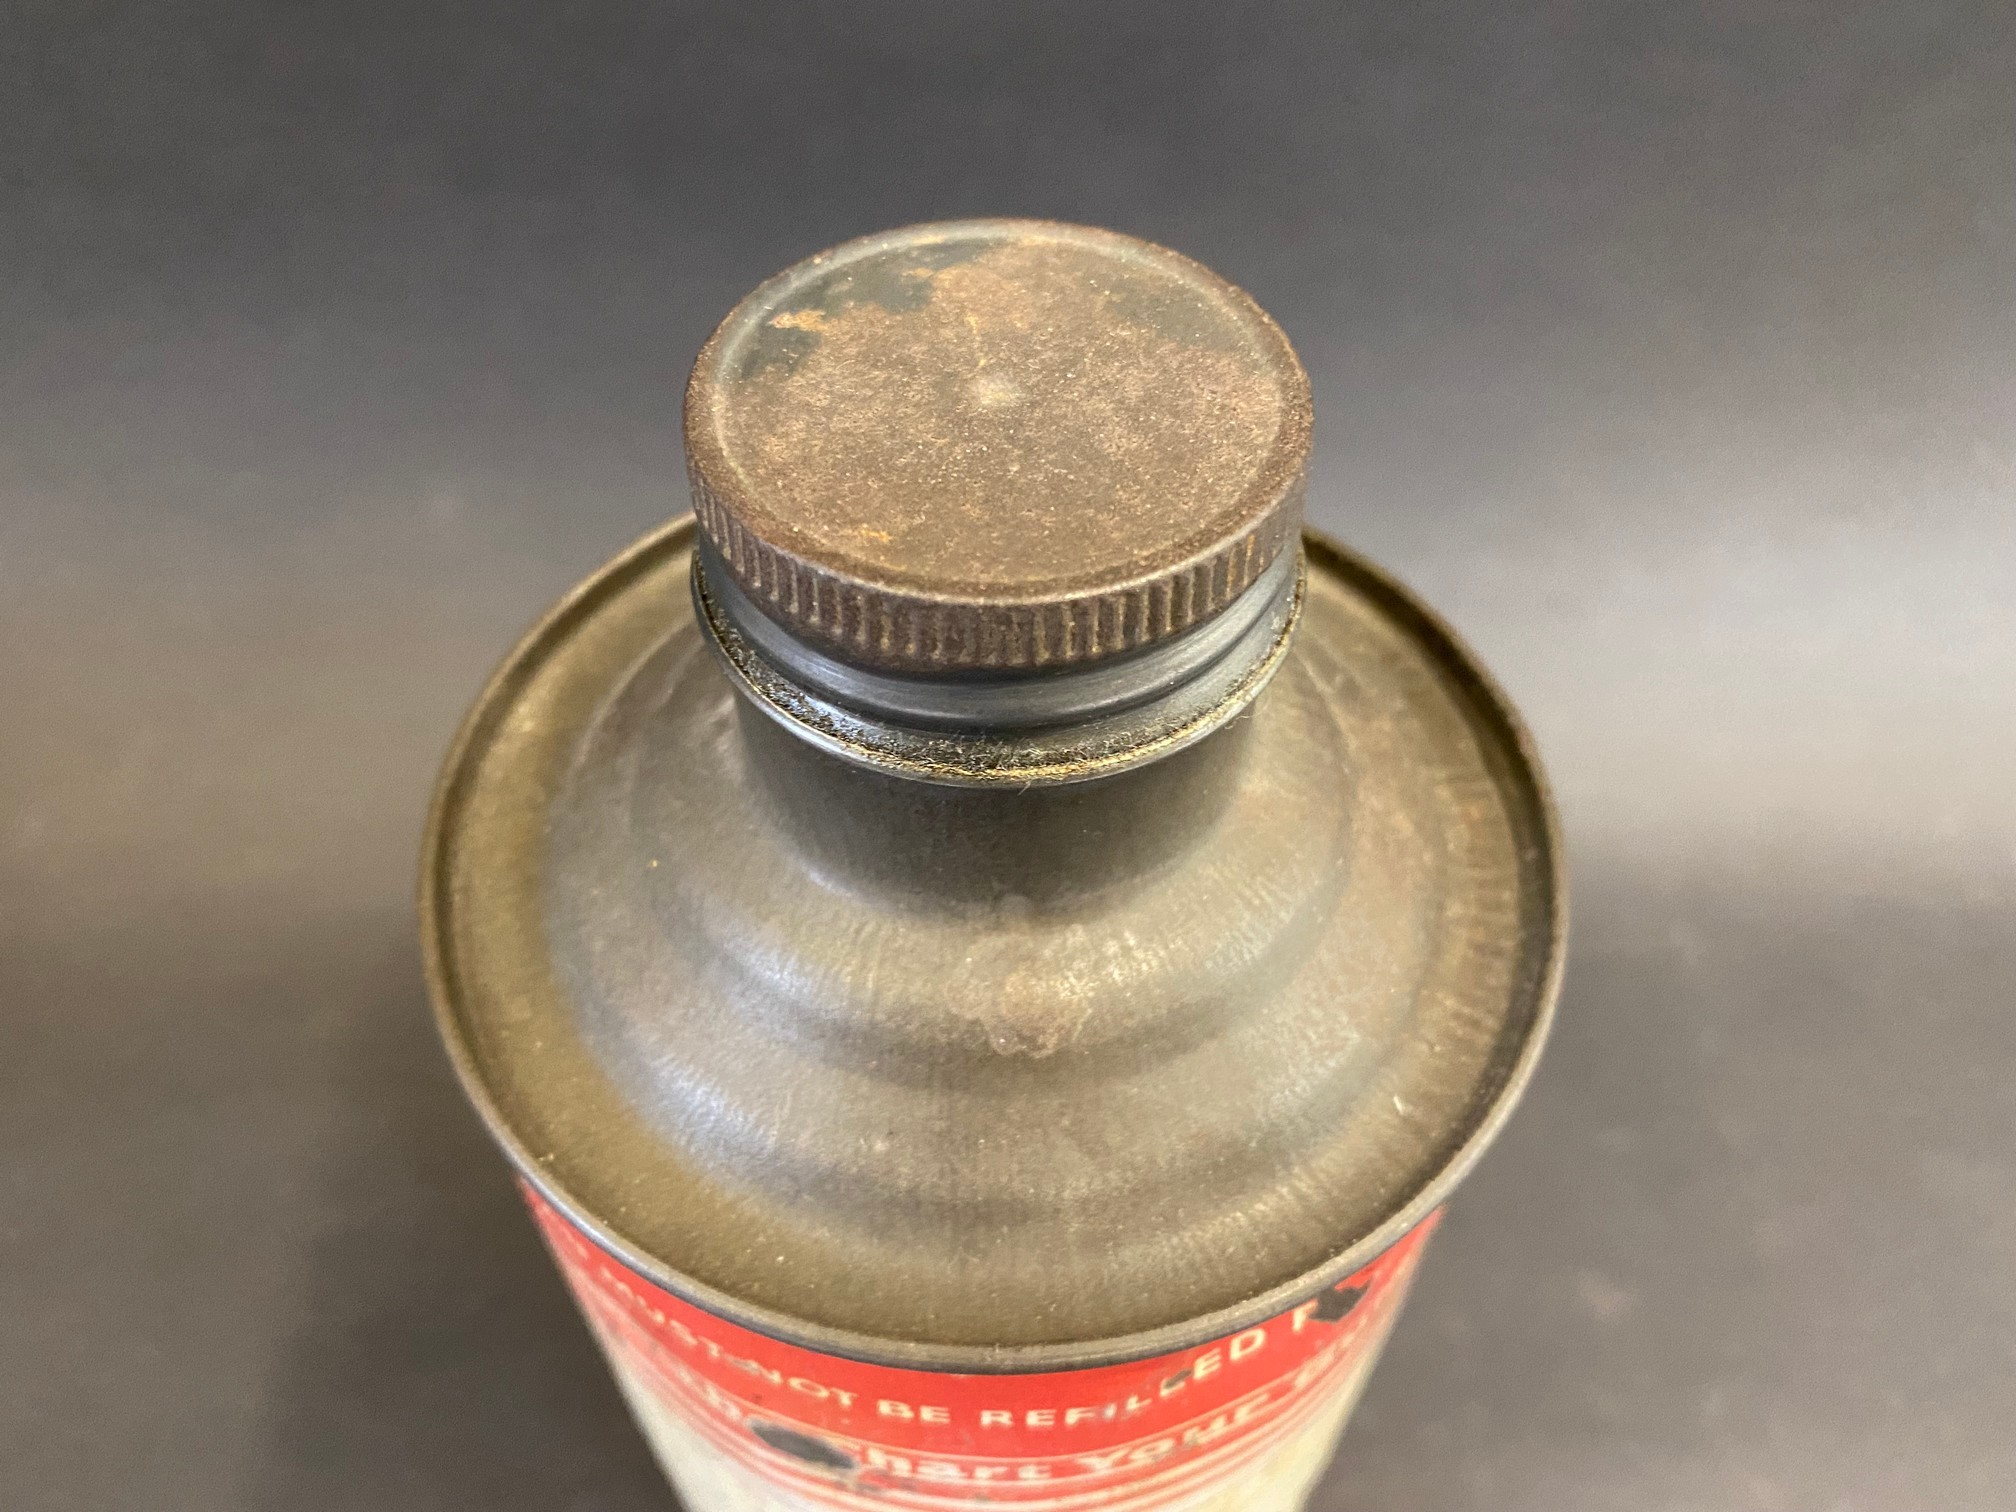 A Gargoyle Mobiloil 'C' for gears cylindrical quart oil can. - Image 3 of 4